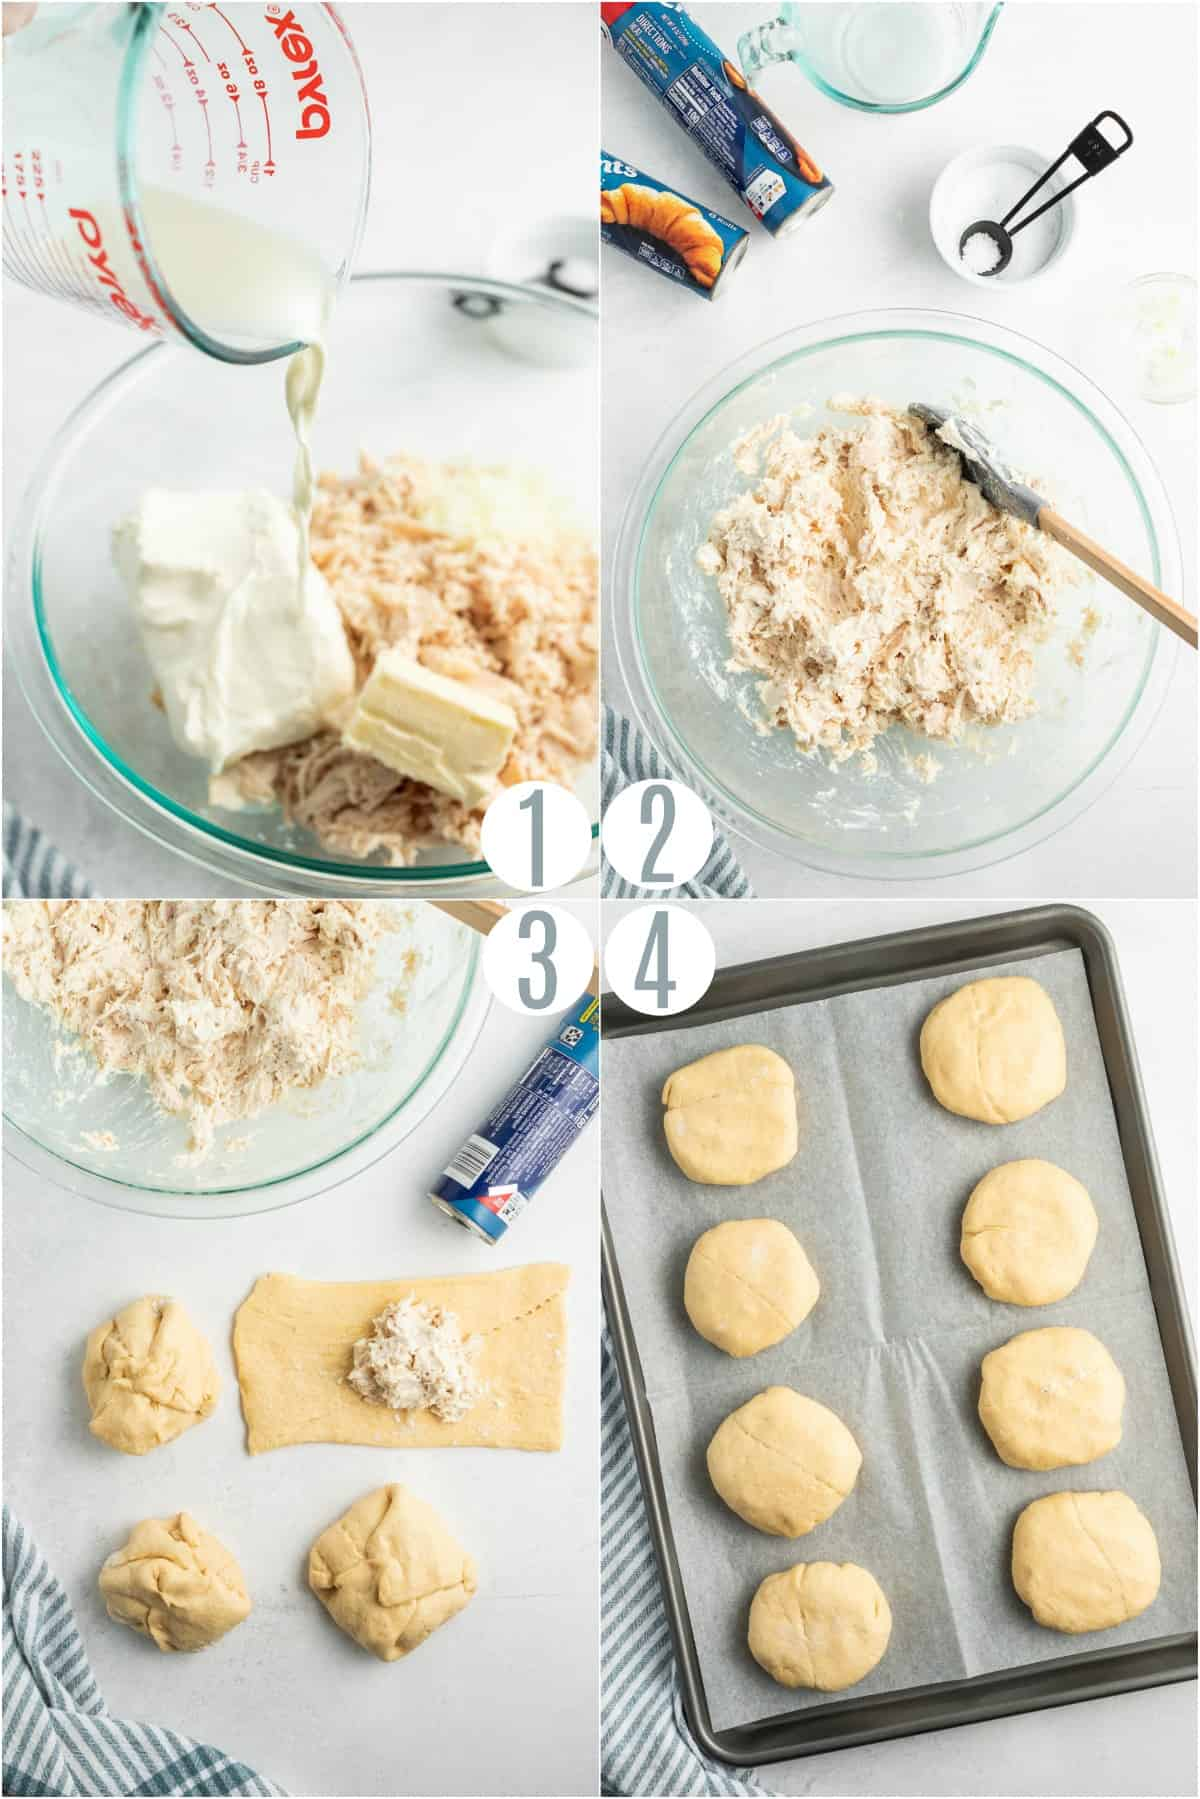 Step by step photos showing how to make chicken pockets with crescent rolls.